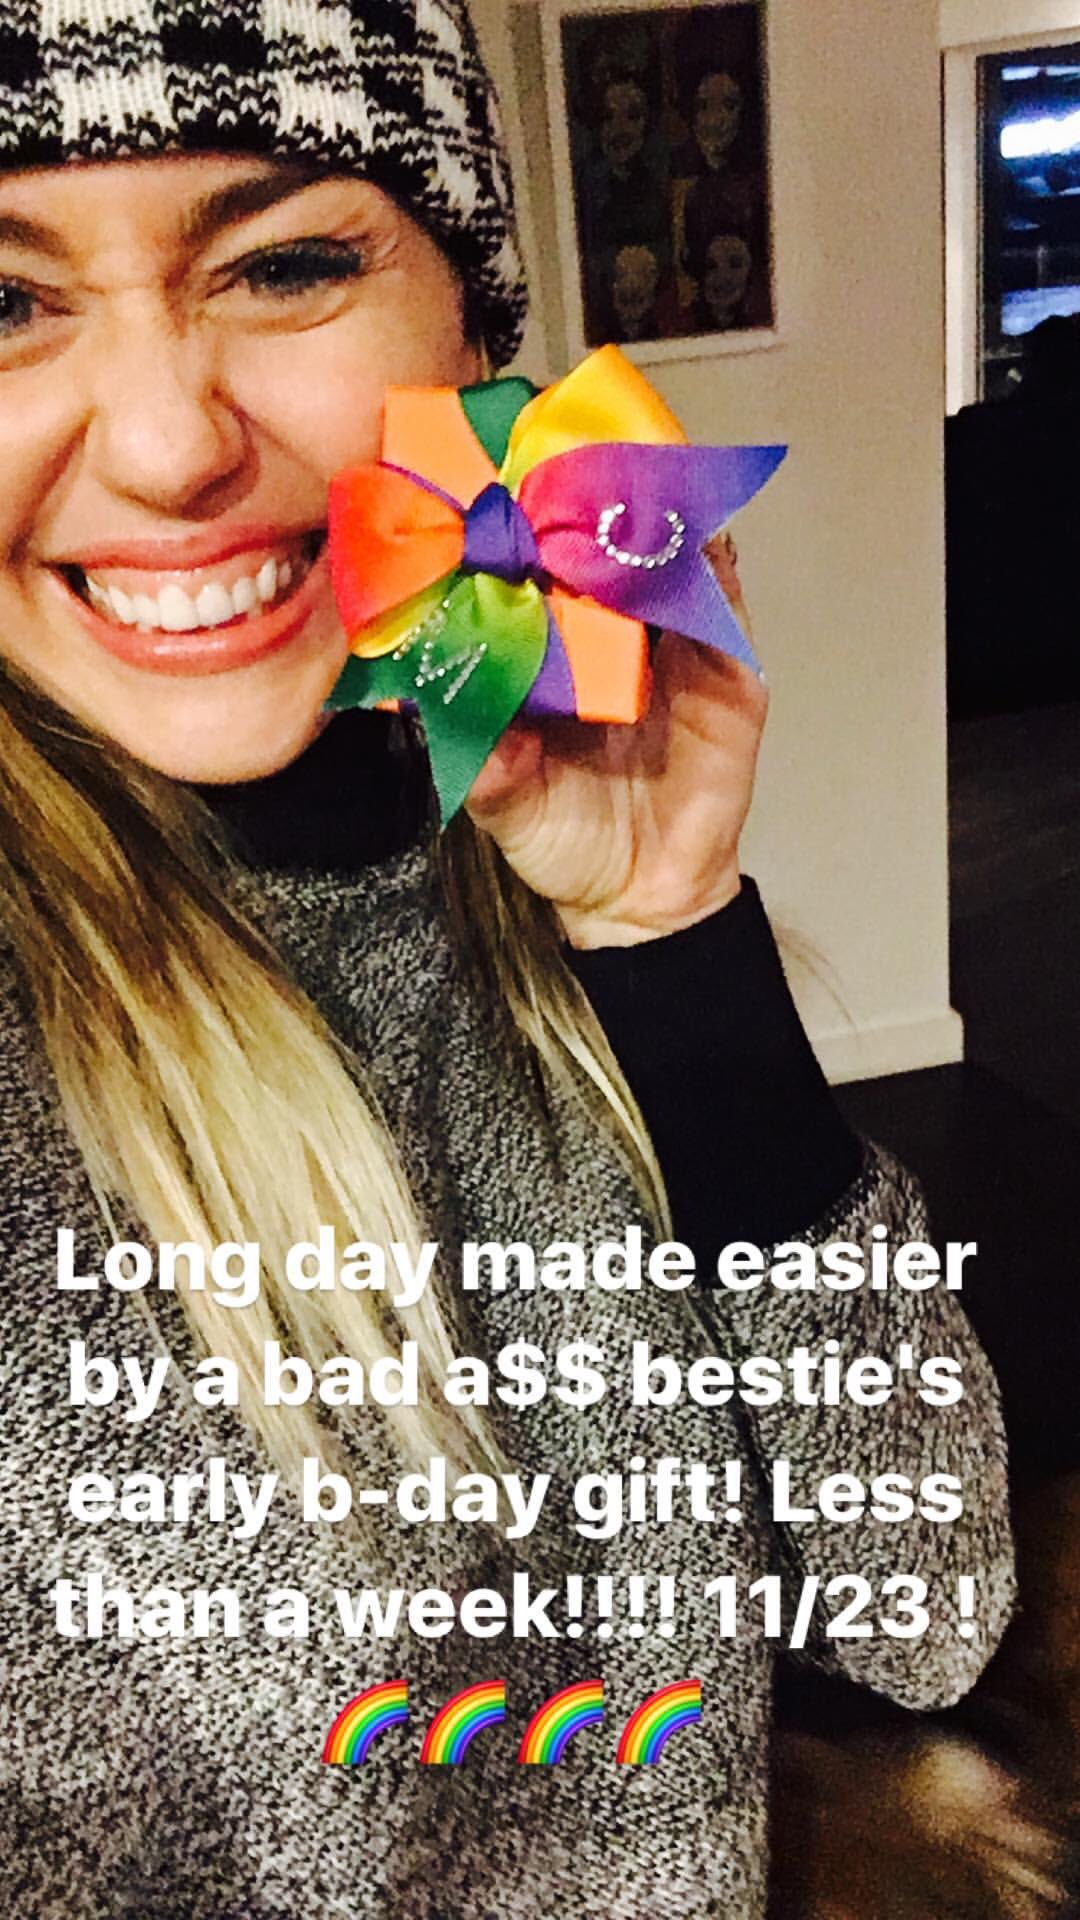 Long day made easier by a bad a$$ besties b-day gift! Less than a week!!! #1123 �� �� ���� https://t.co/Npk0mSK6wr